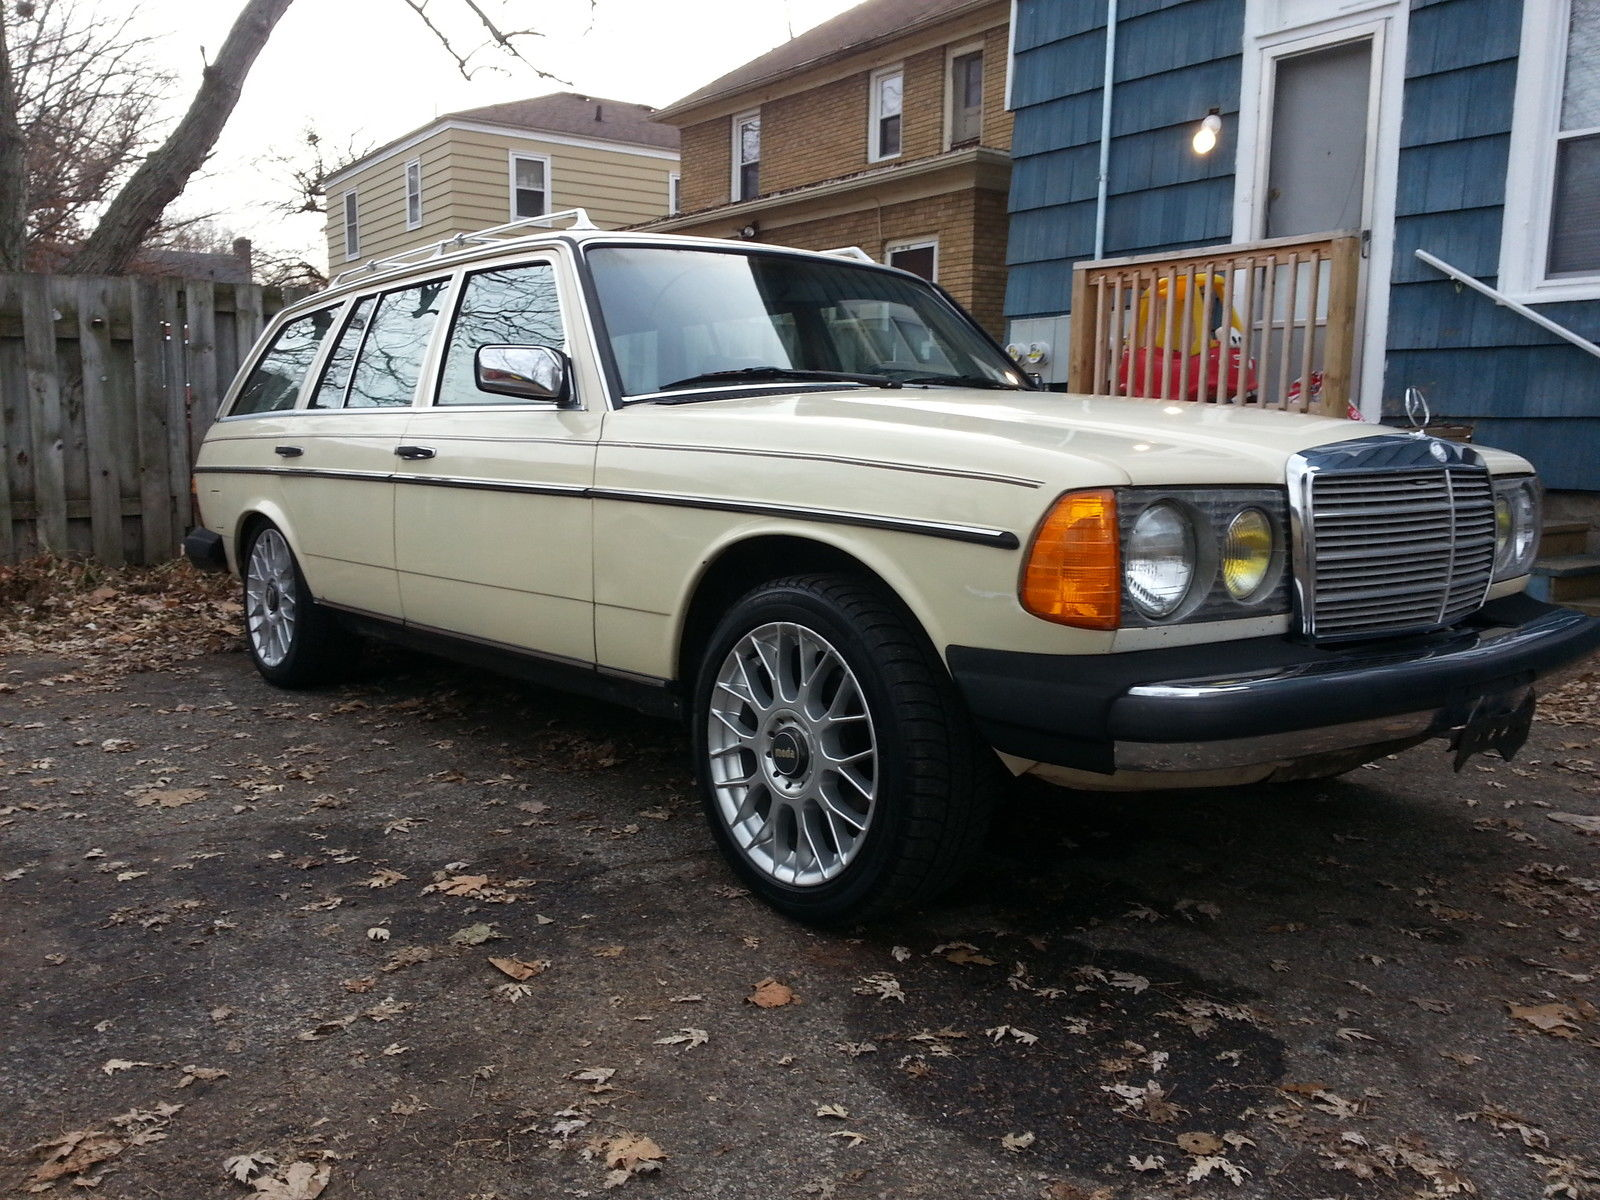 1983 mercedes benz w123 300td turbo diesel wagon for Mercedes benz 300 diesel